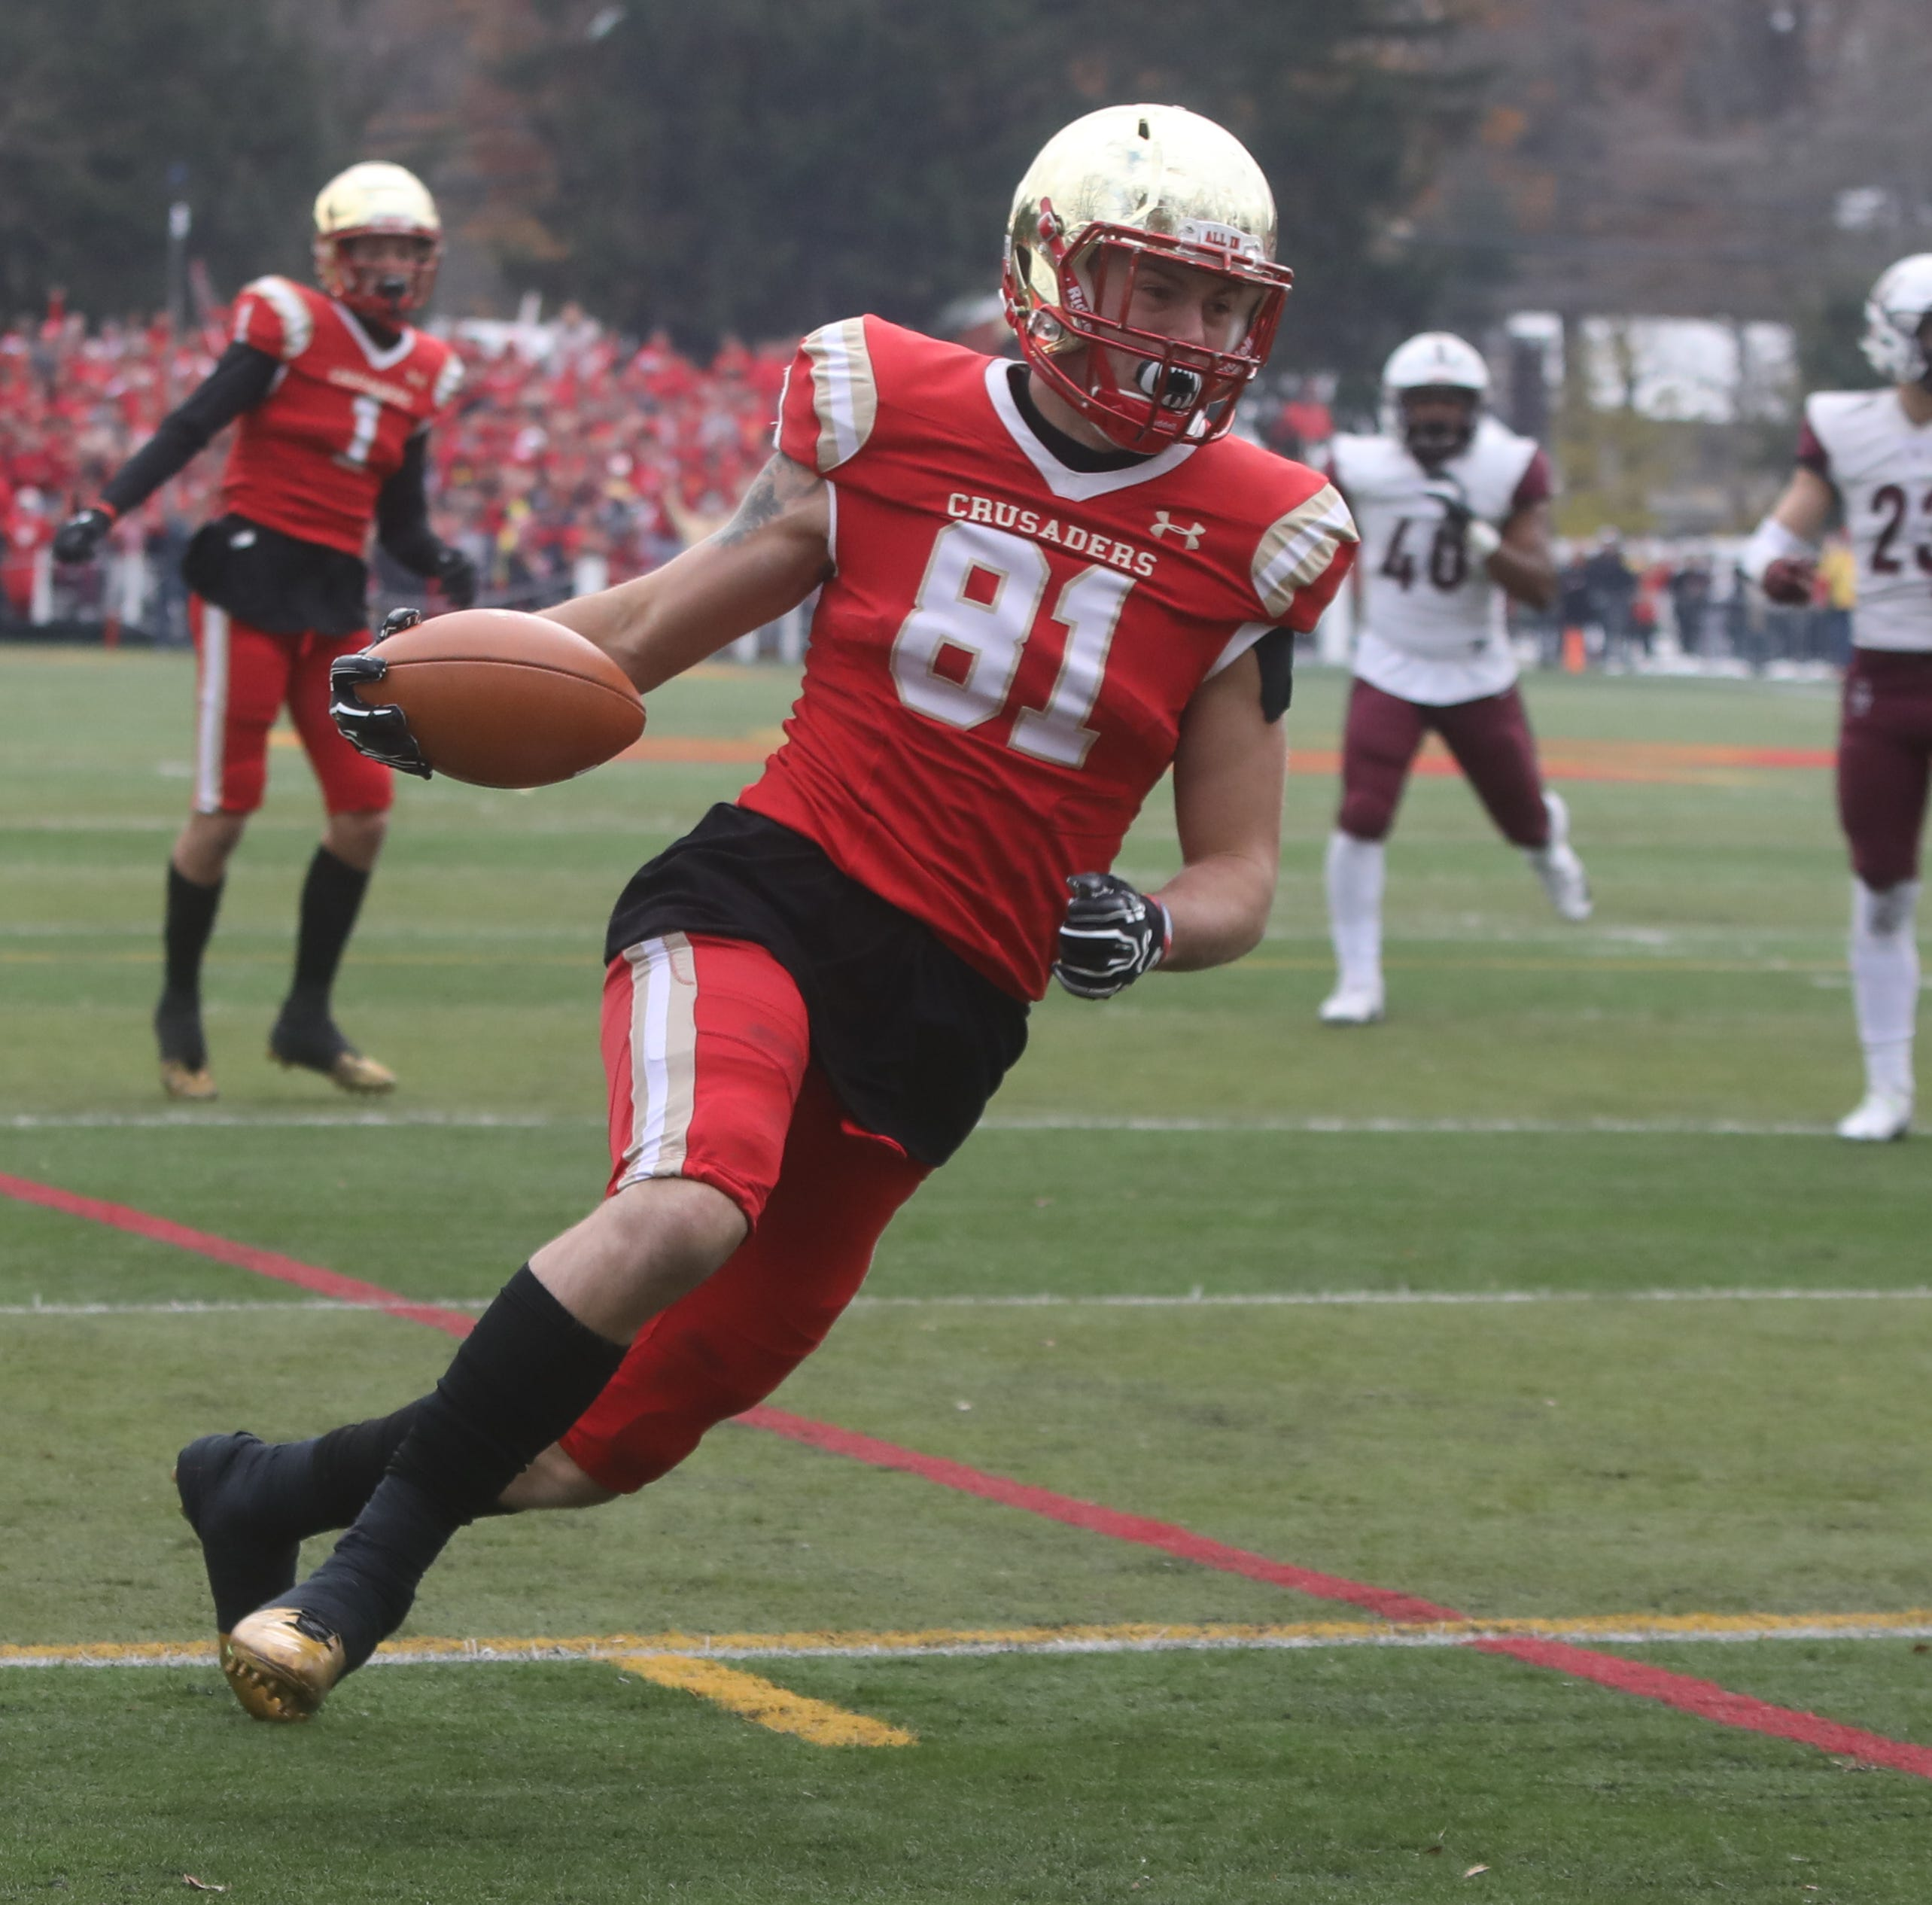 Bergen Catholic football rallies to defeat arch rival Don Bosco in Non-Public 4 semifinals